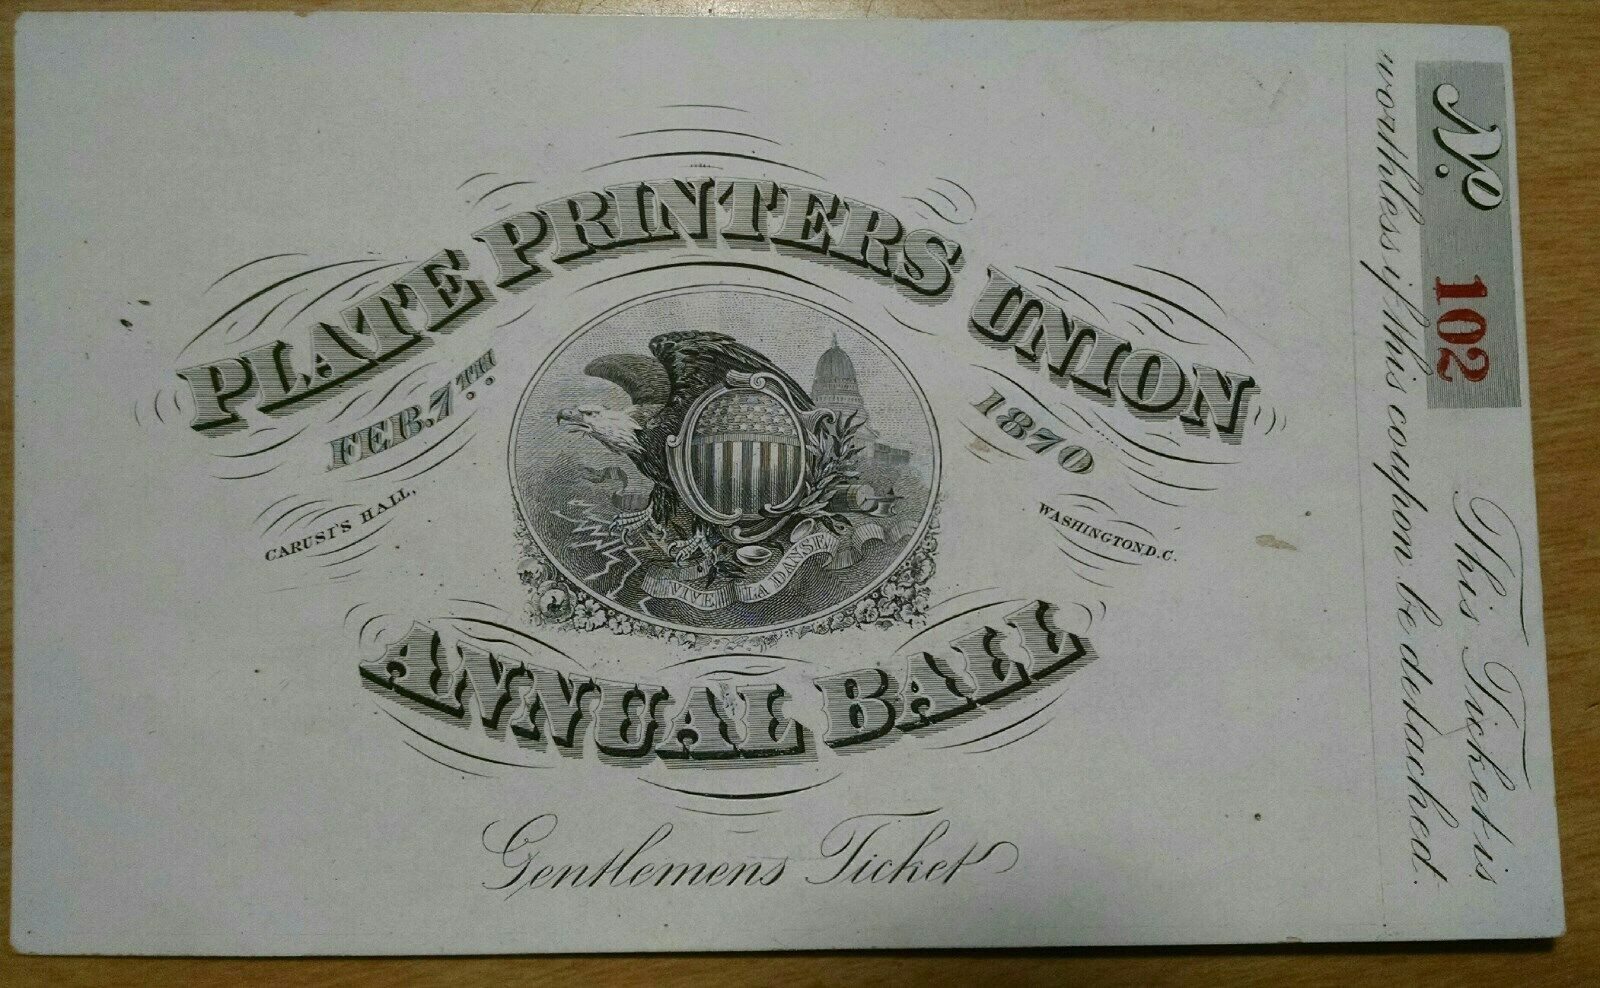 1870 PPU ball ticket.jpg